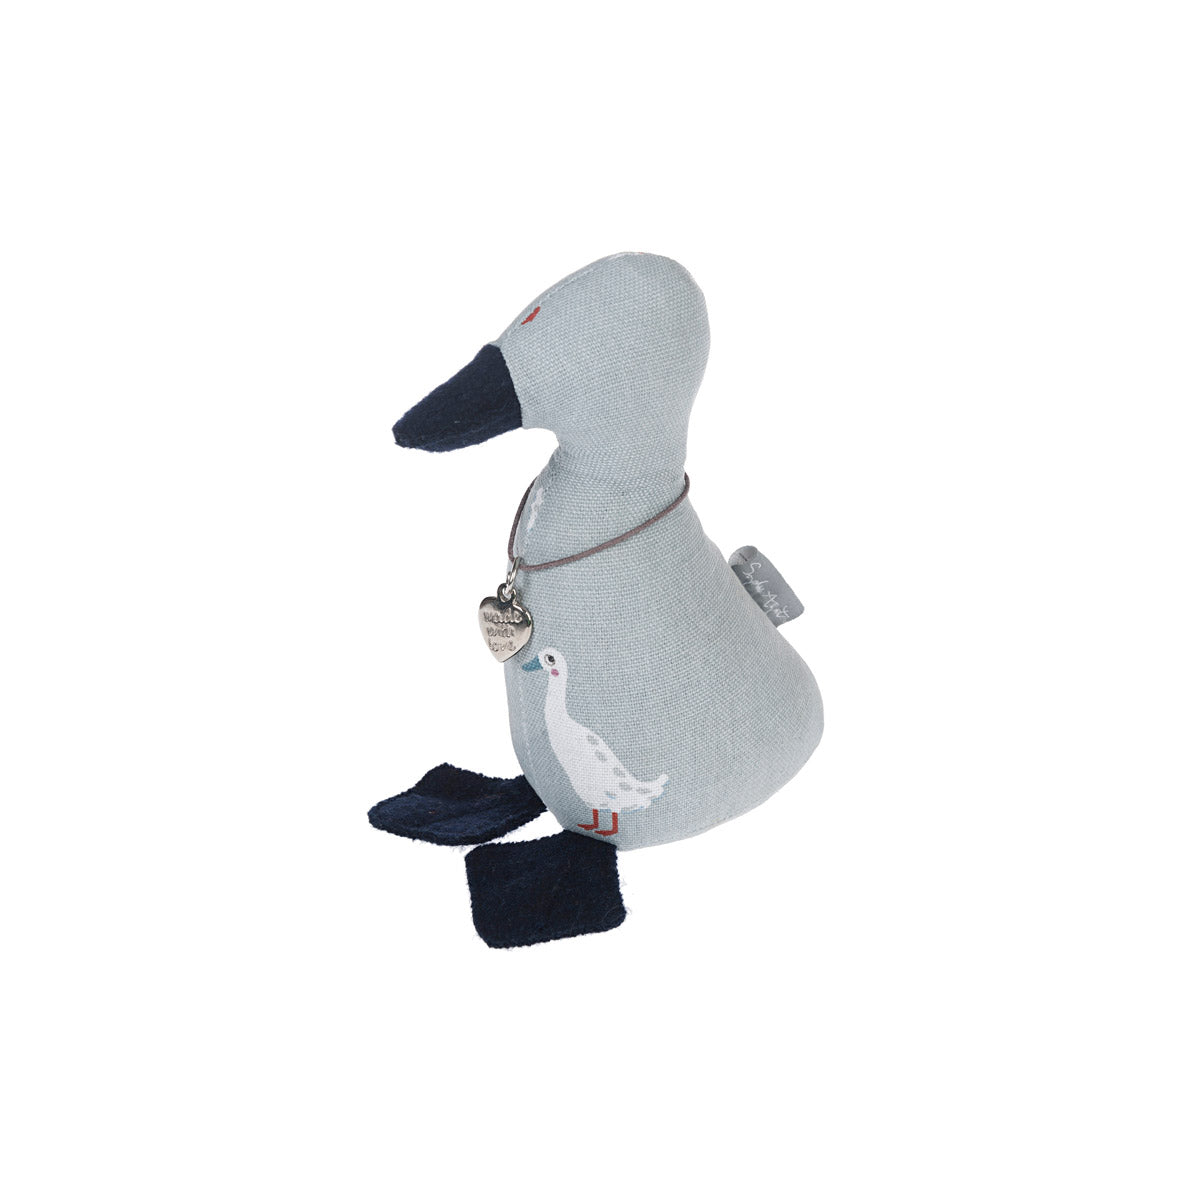 Runner Duck Desk Buddy Paperweight